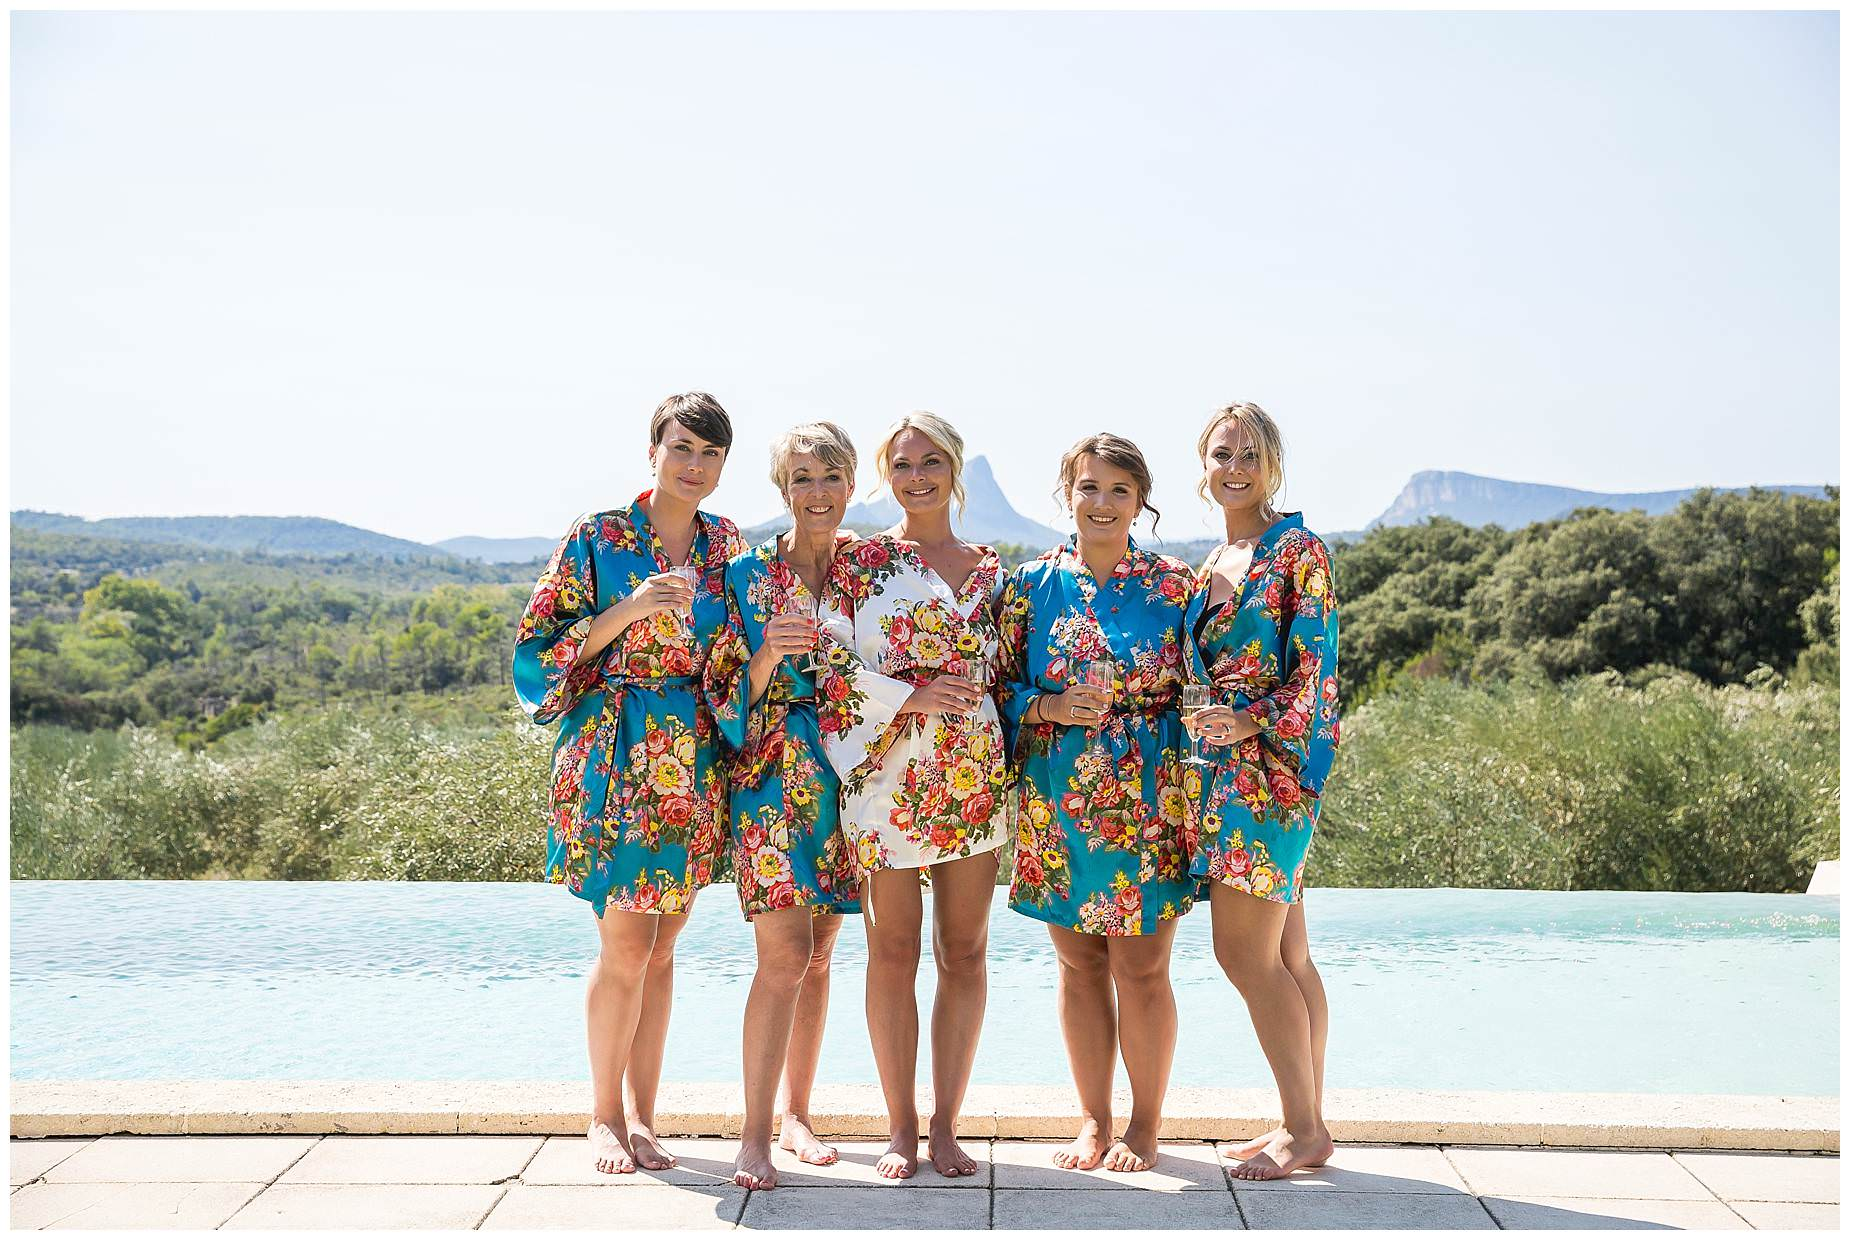 Gilrs in flowery dressing gowns at Domaine Saint Germain Wedding